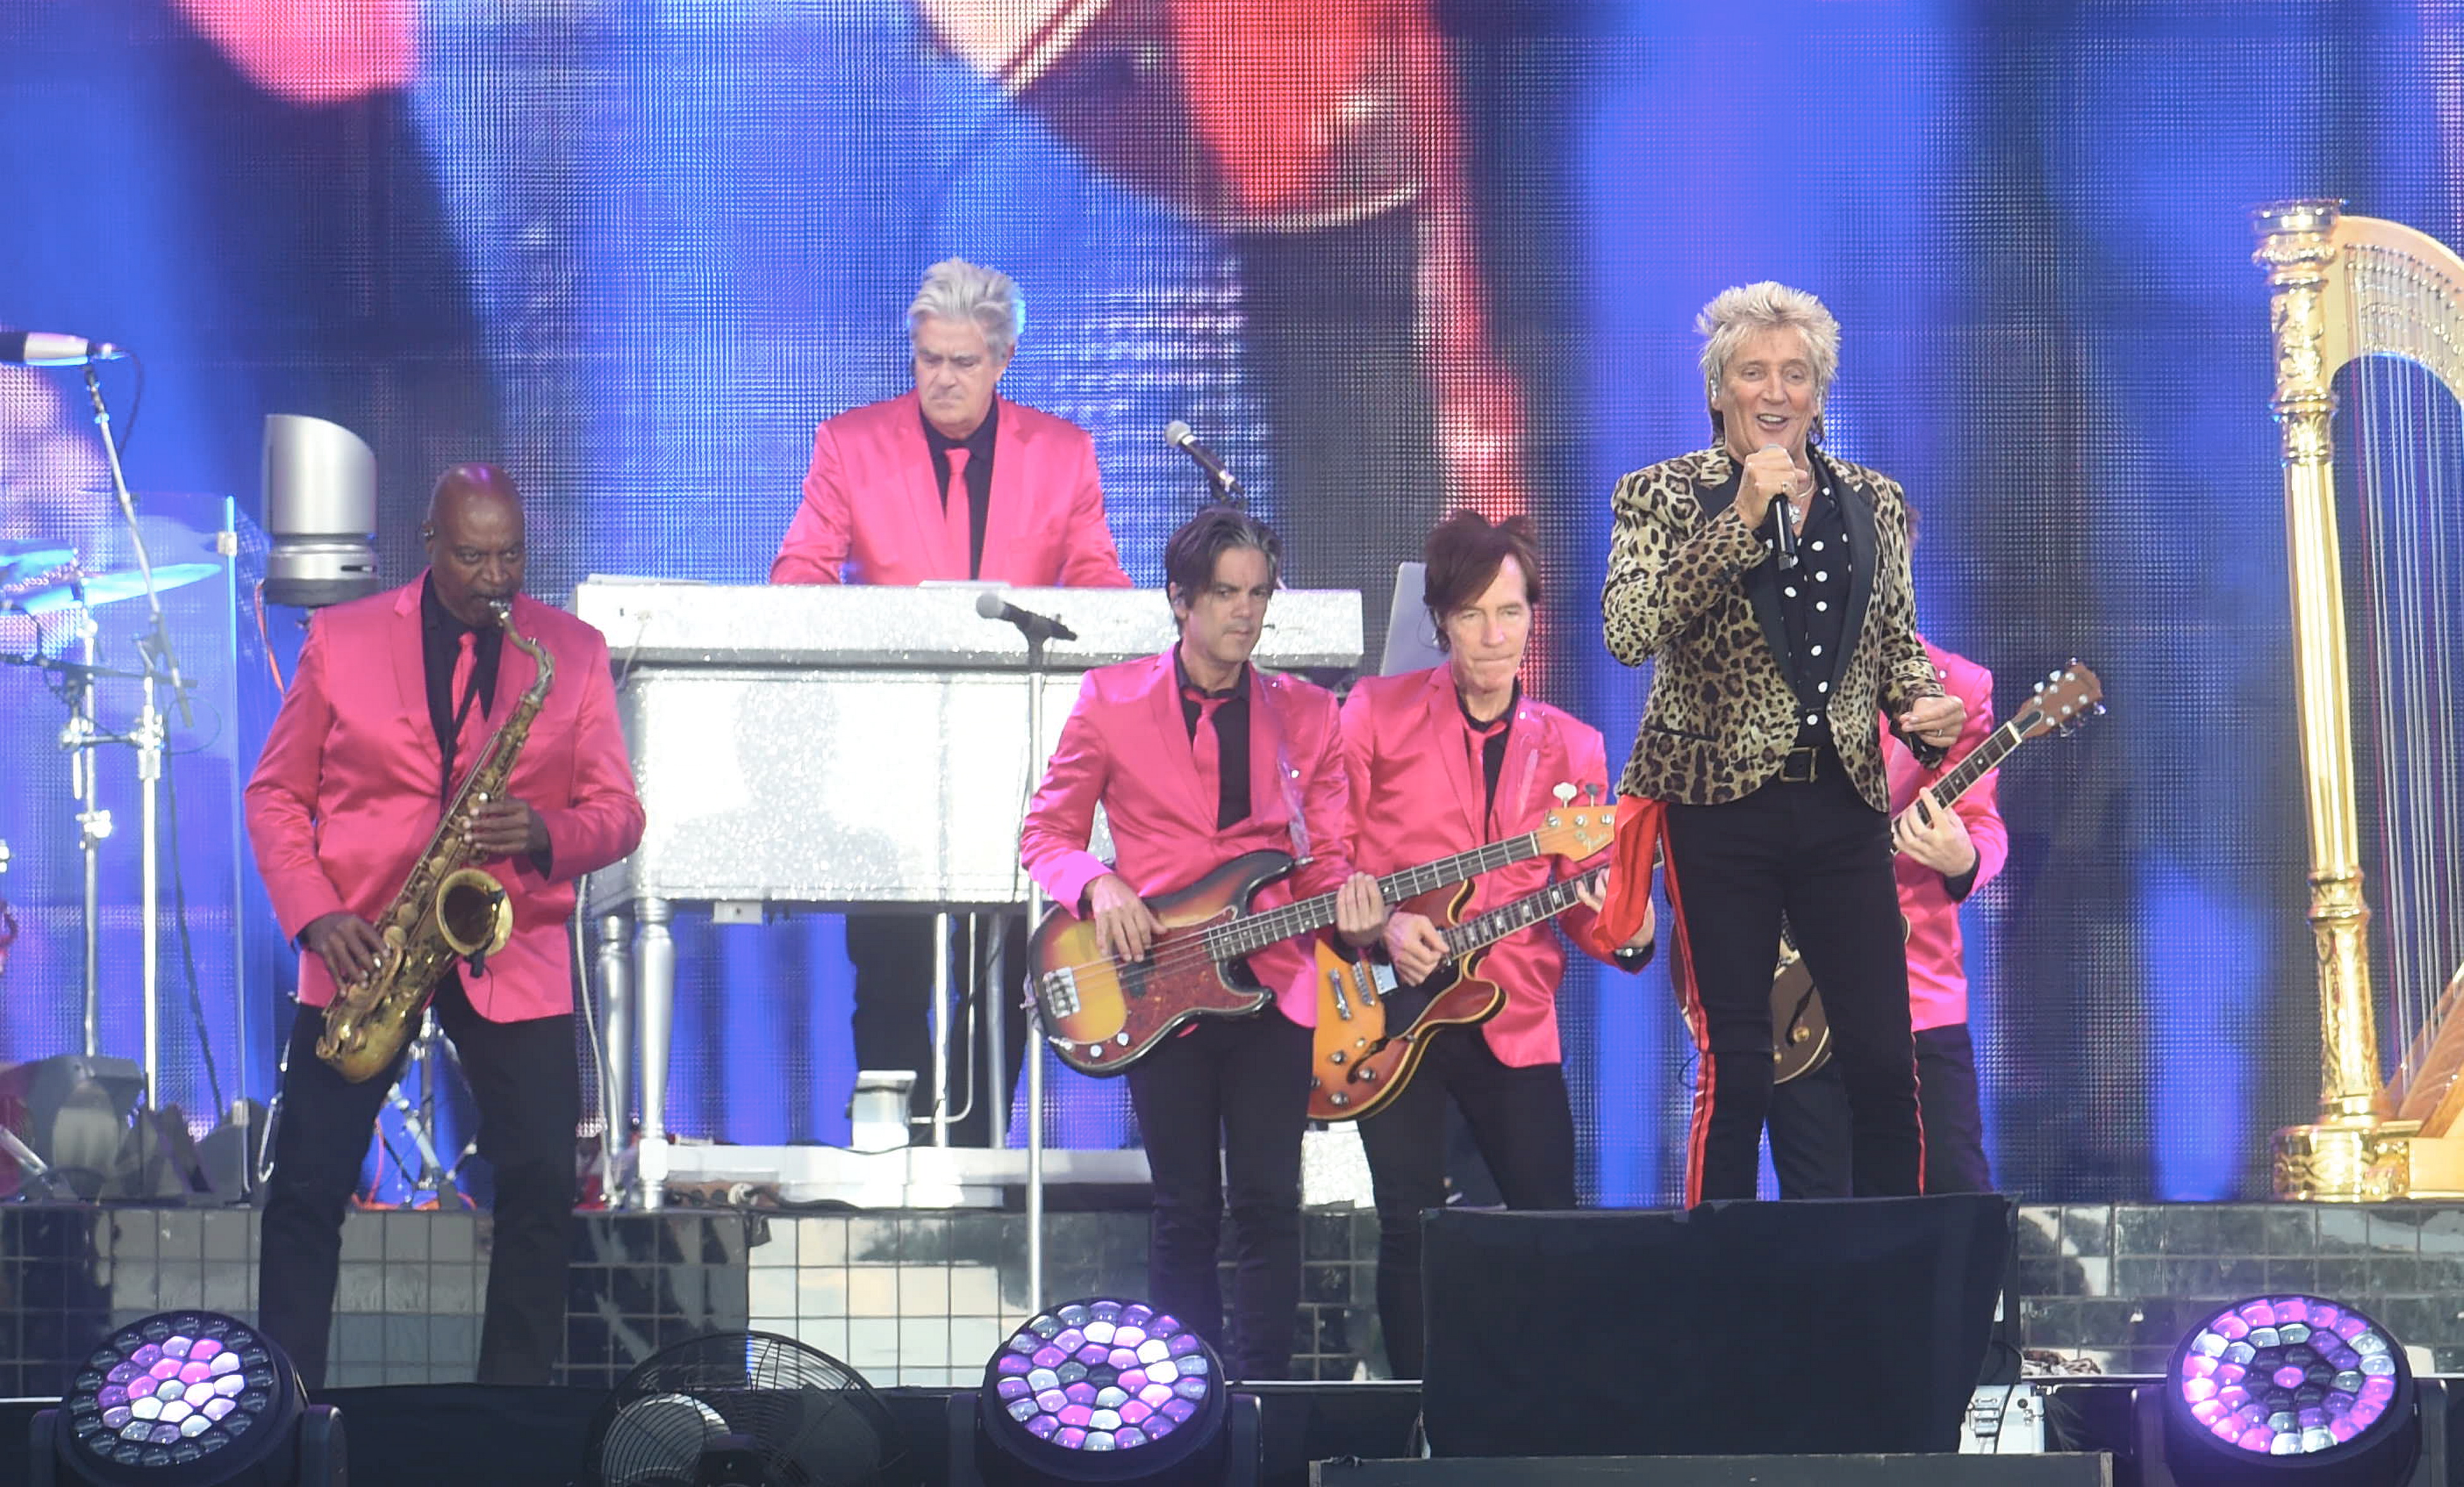 Rod Stewart performed at the AECC last night